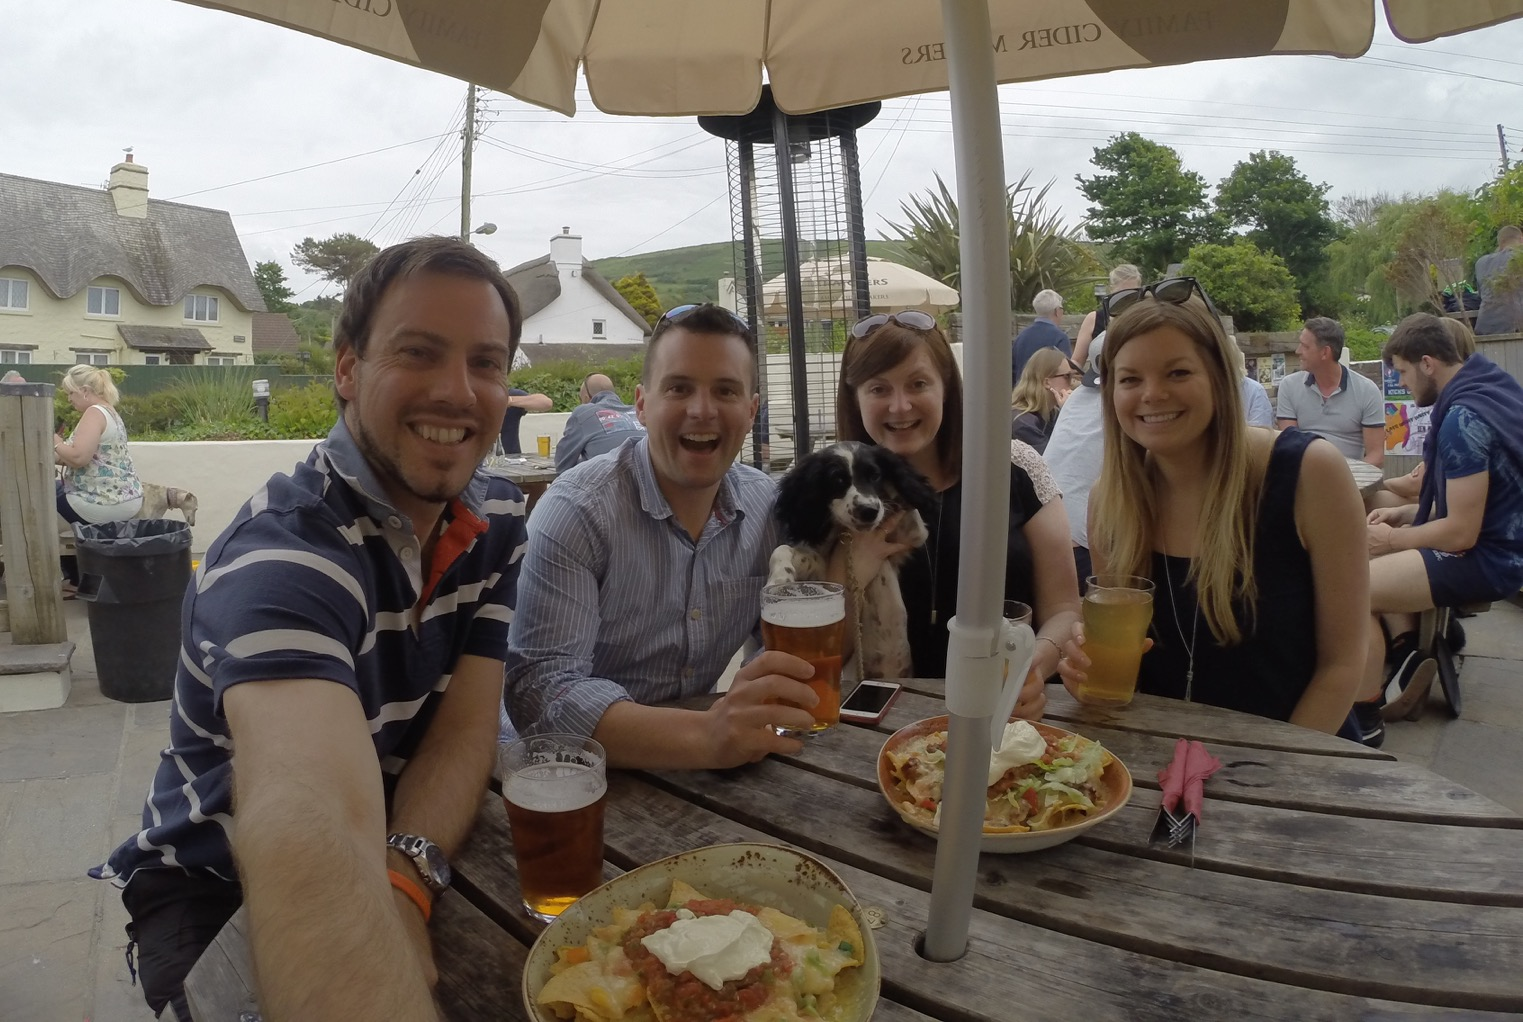 Enjoying the cider and food at the Thatch pub, Croyde